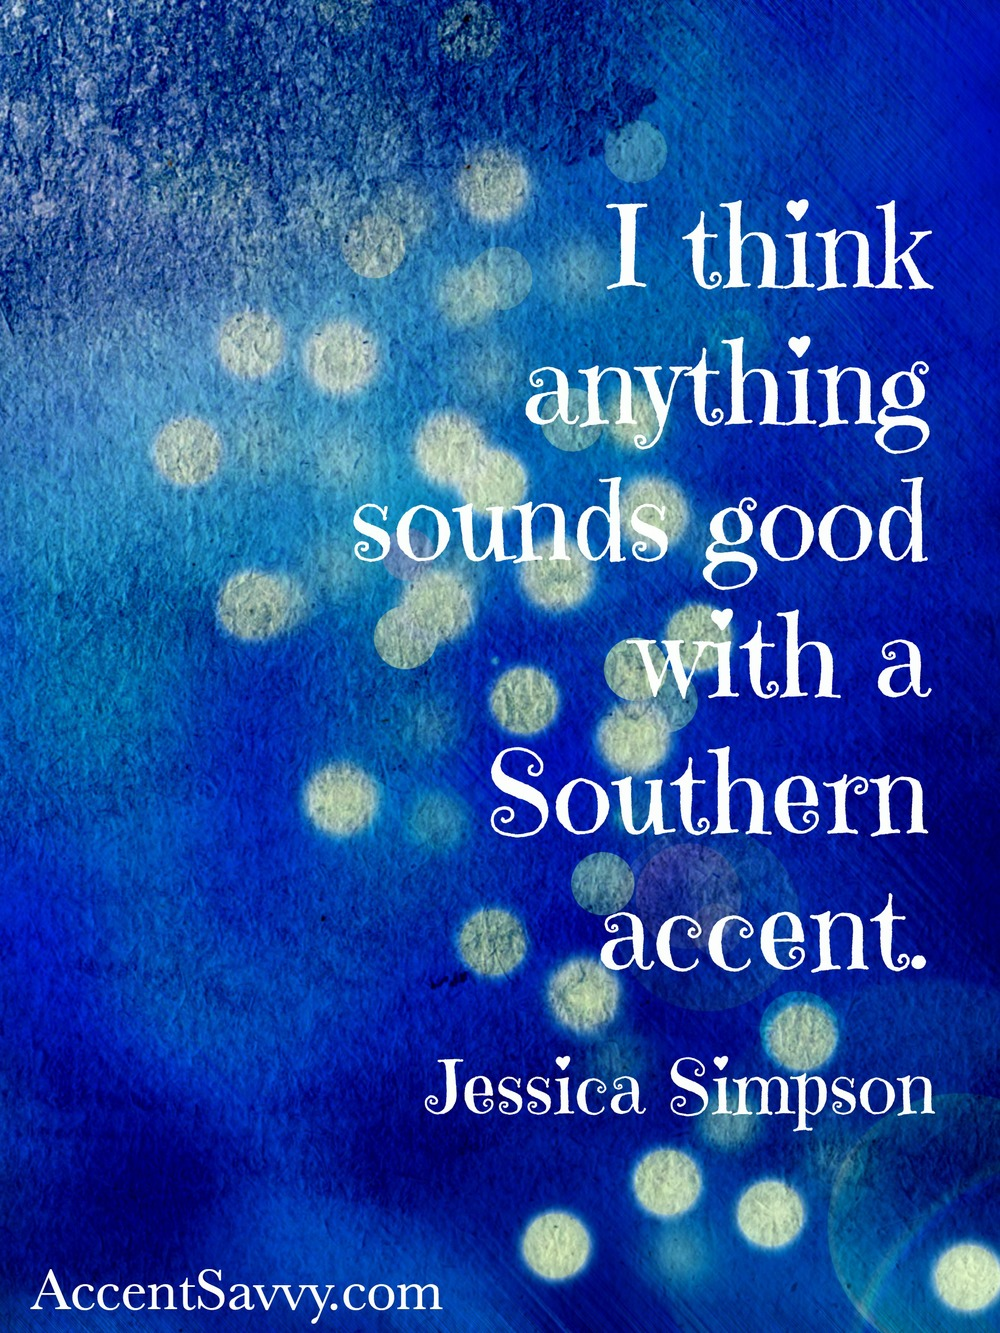 We love how Jessica continues to represent the South.